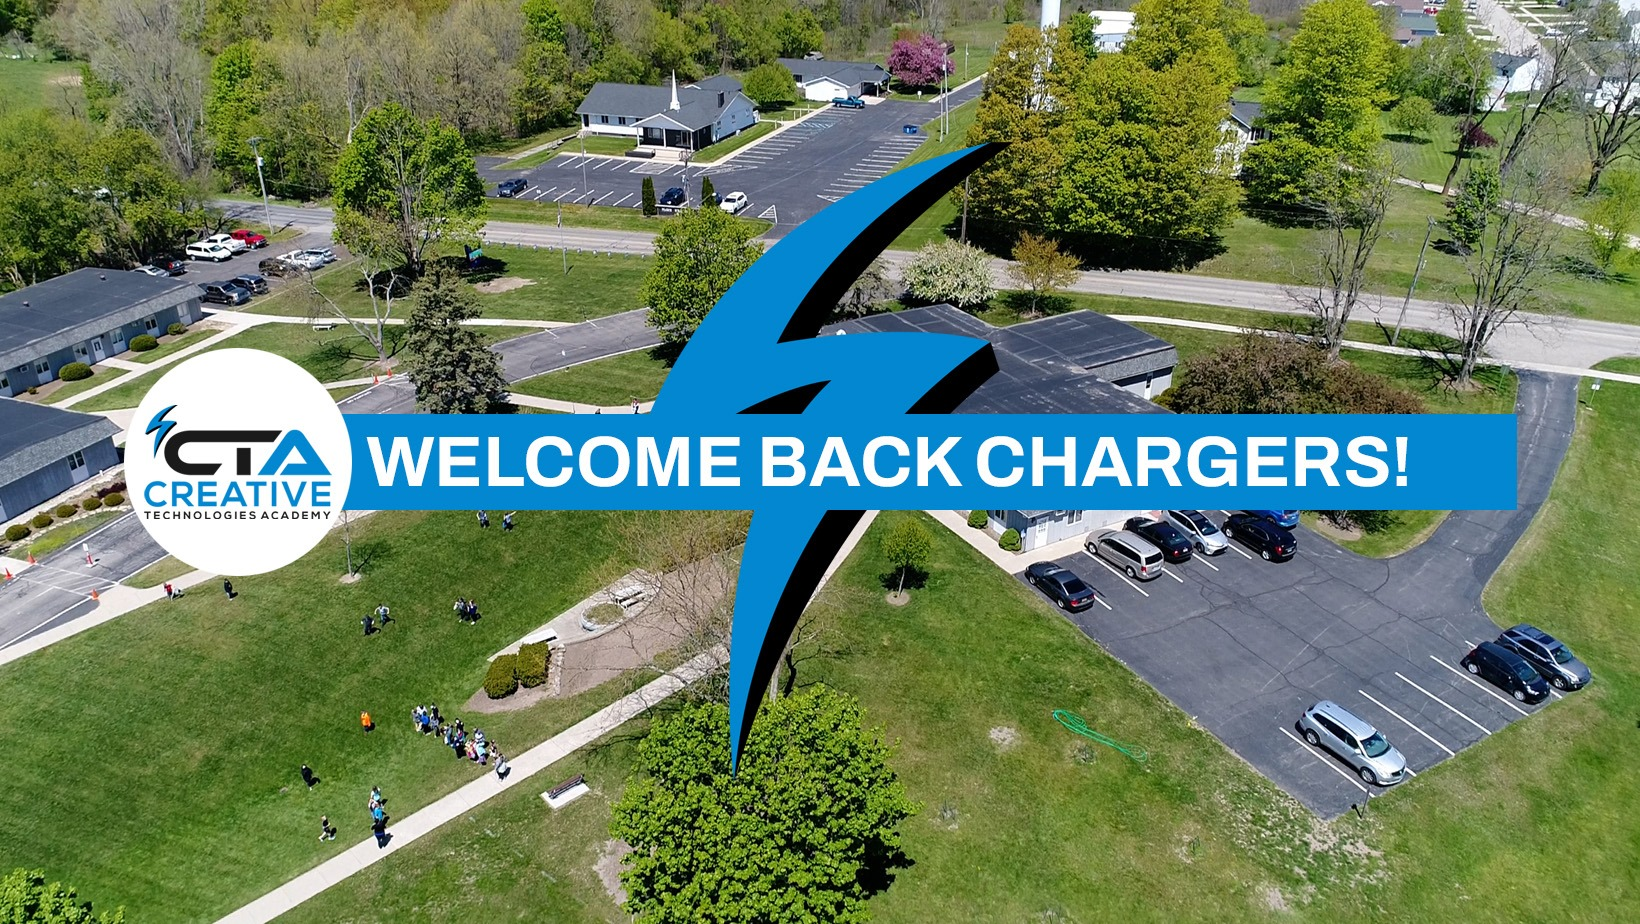 welcome back chargers!